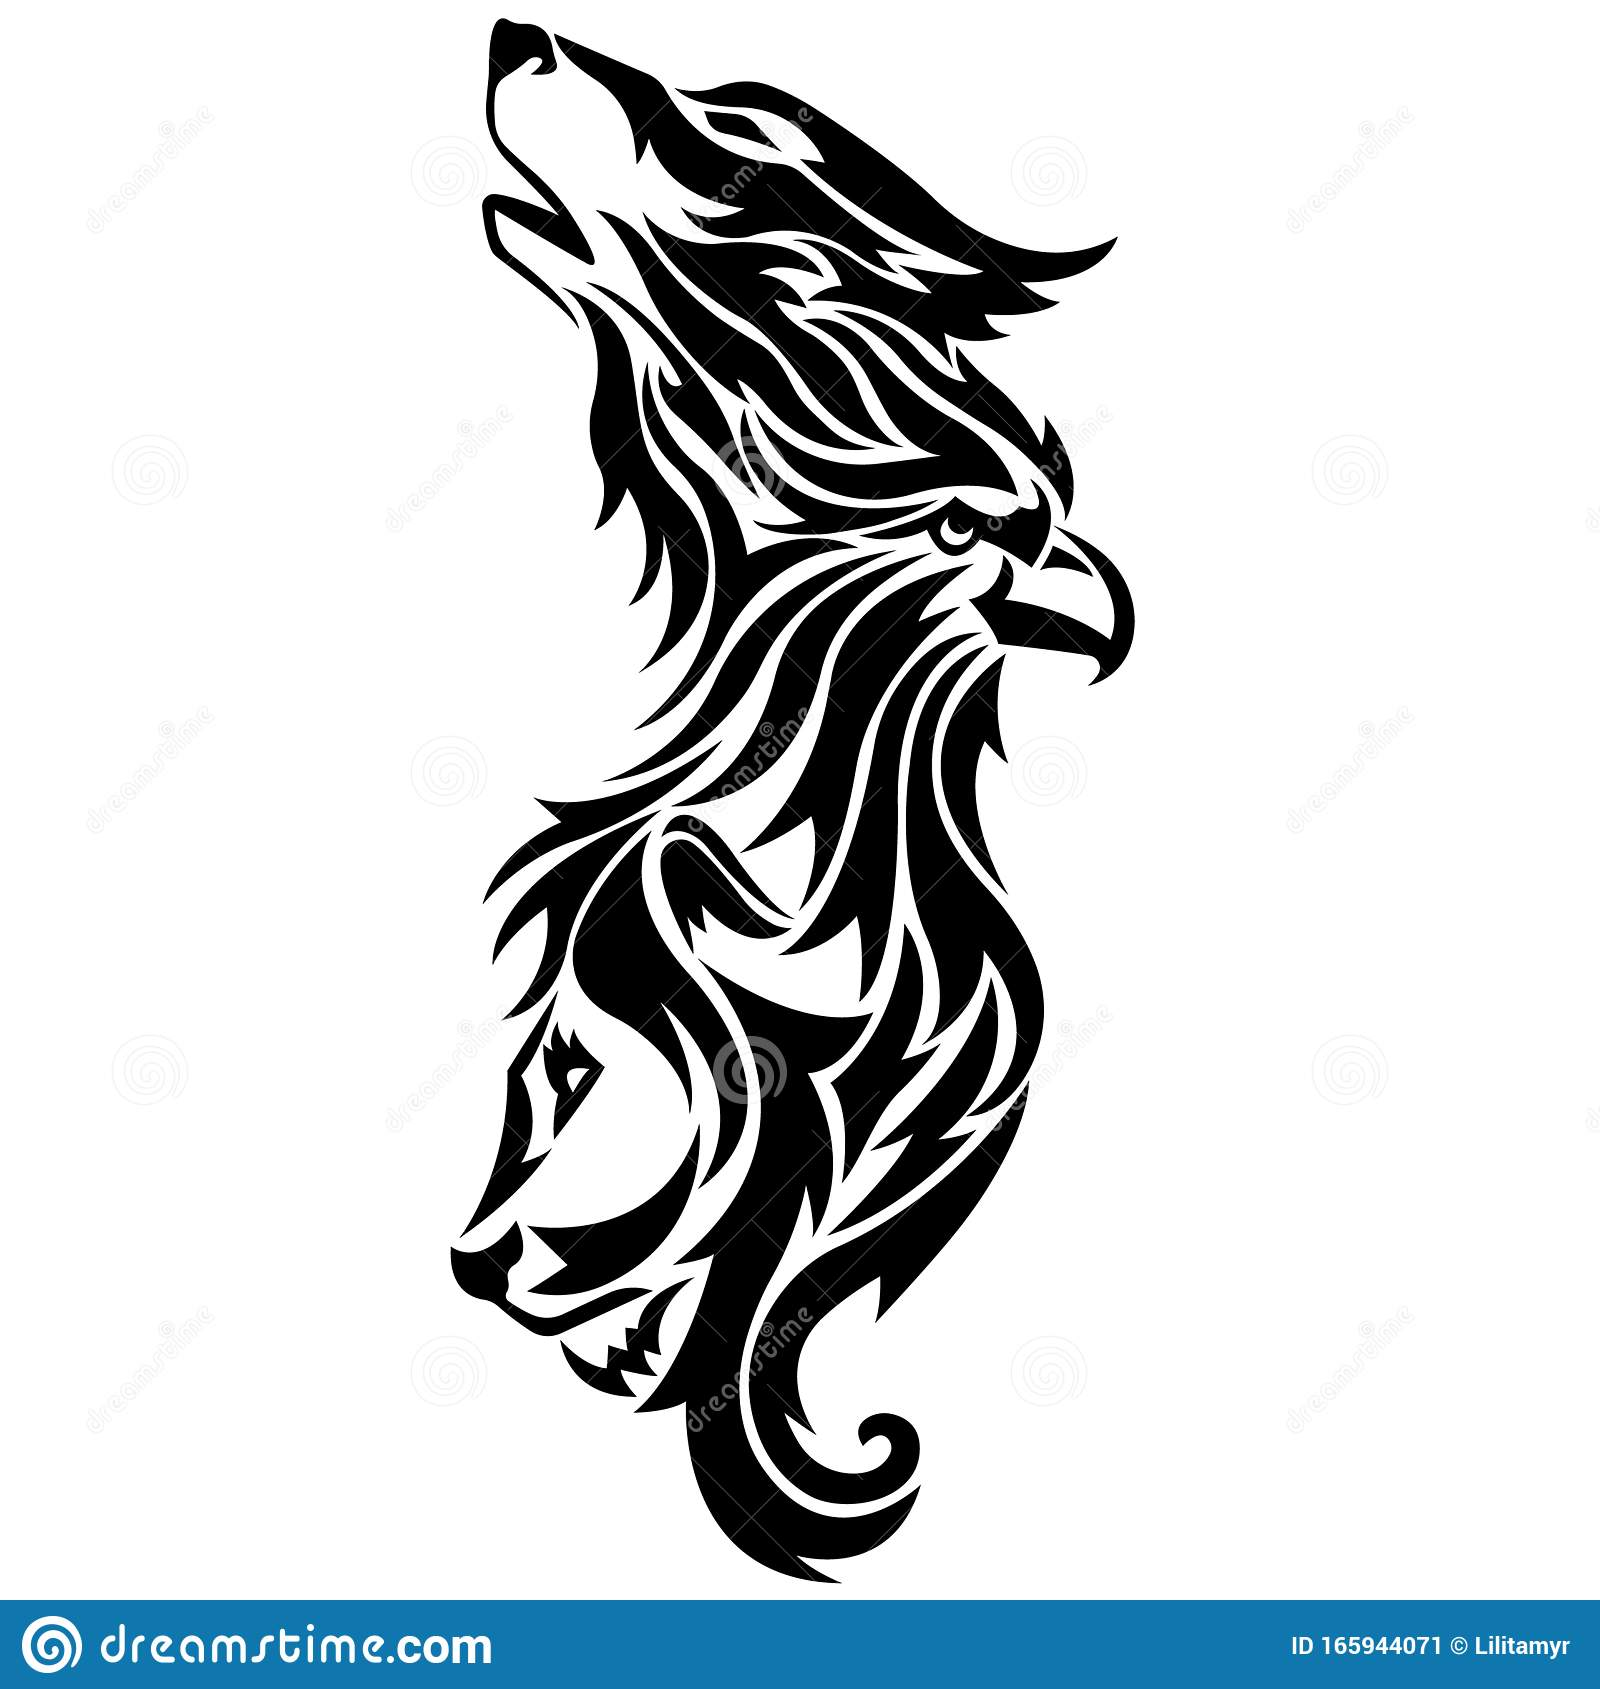 Silhouette Outline Wolf Eagle Lion Drawn In Black On A White Background With Lines Of Different Widths Stock Illustration Illustration Of Lion Graphic 165944071 Download 56 lion outline free vectors. https www dreamstime com silhouette outline wolf eagle lion drawn black white background lines different widths logo animal bird vector image165944071